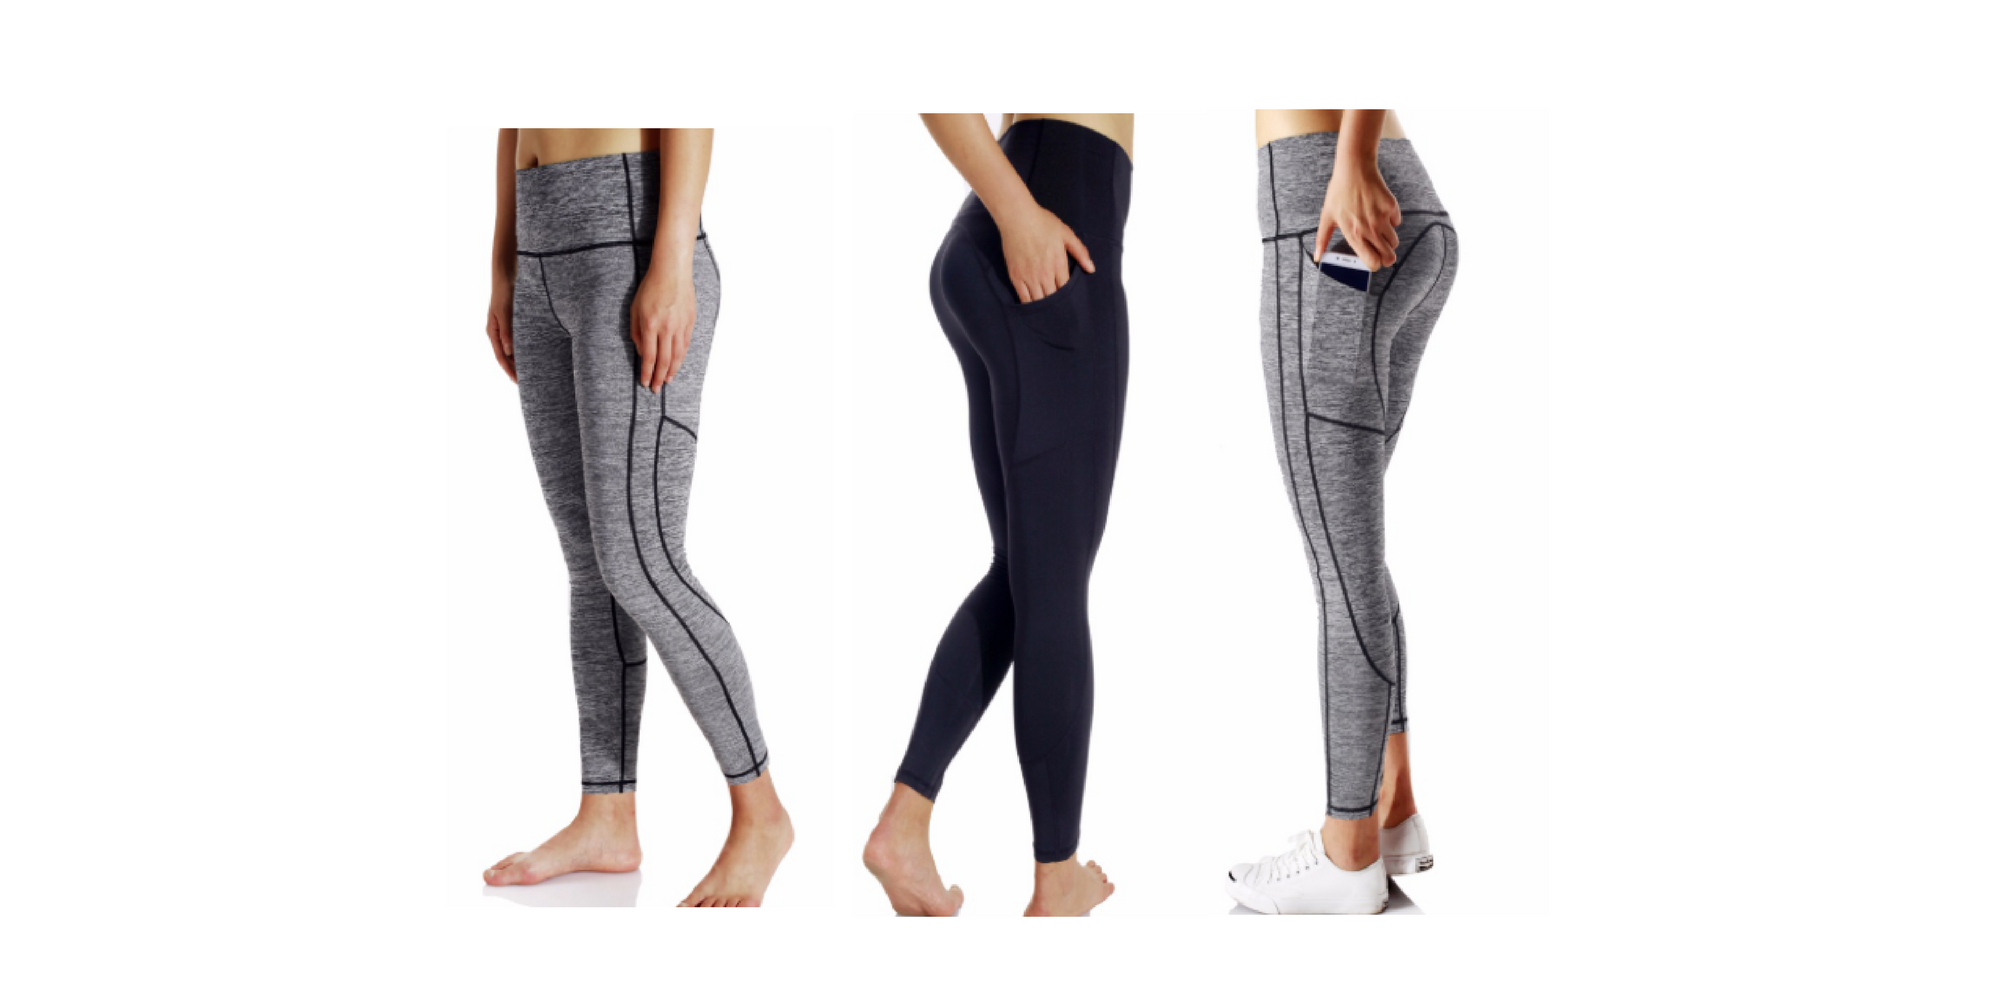 What are you waiting for? - The AmandaLouise Signature Leggings are HERE!